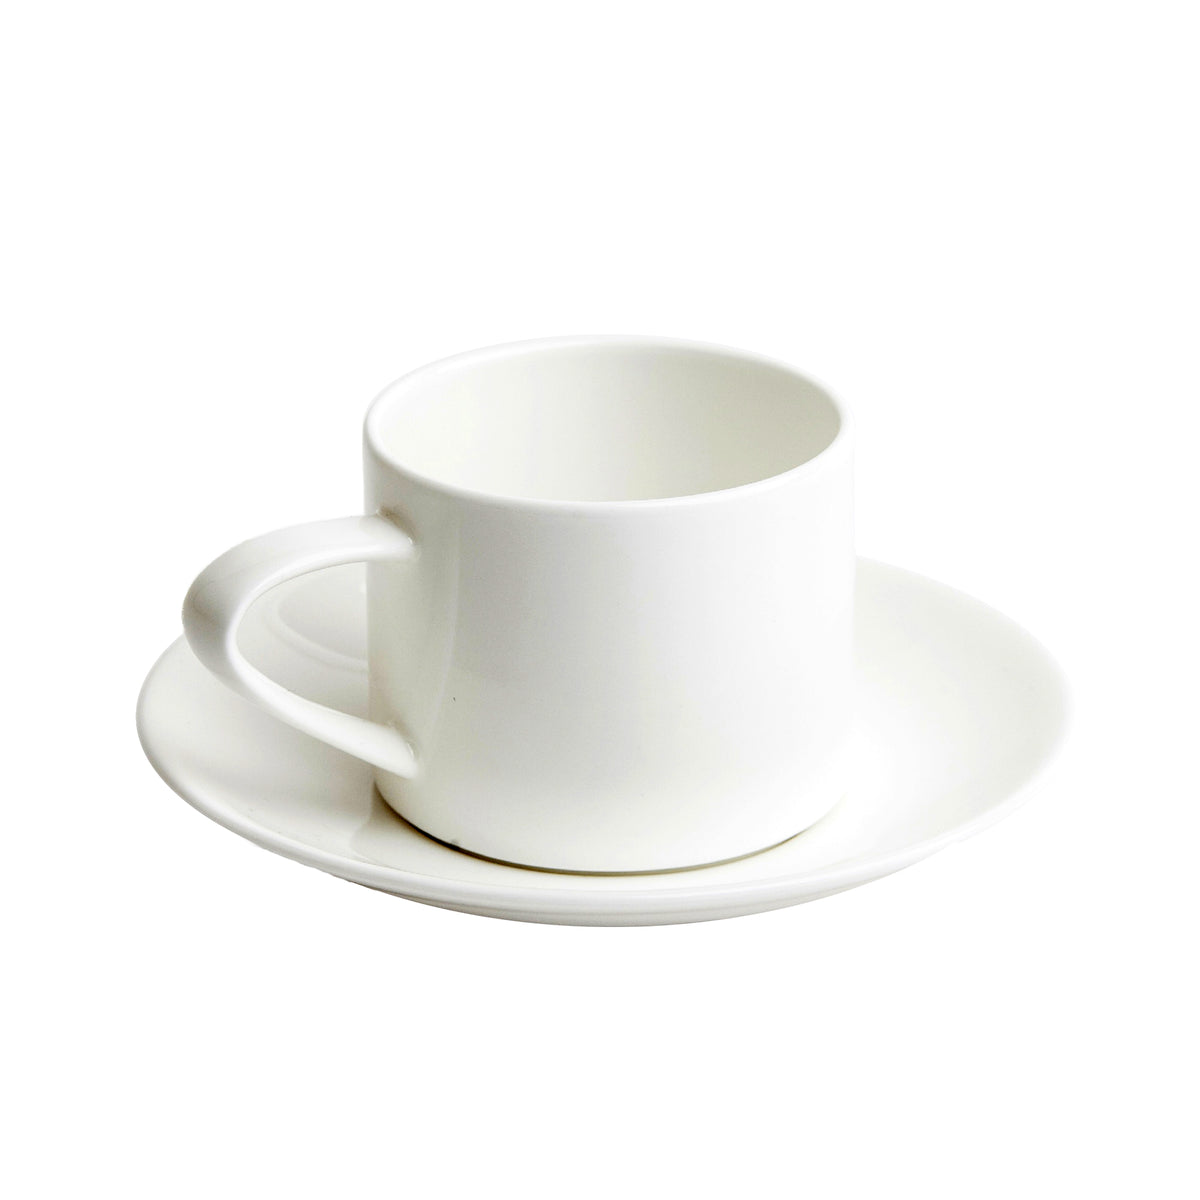 A Table Stackable Coffee Cup and Saucer